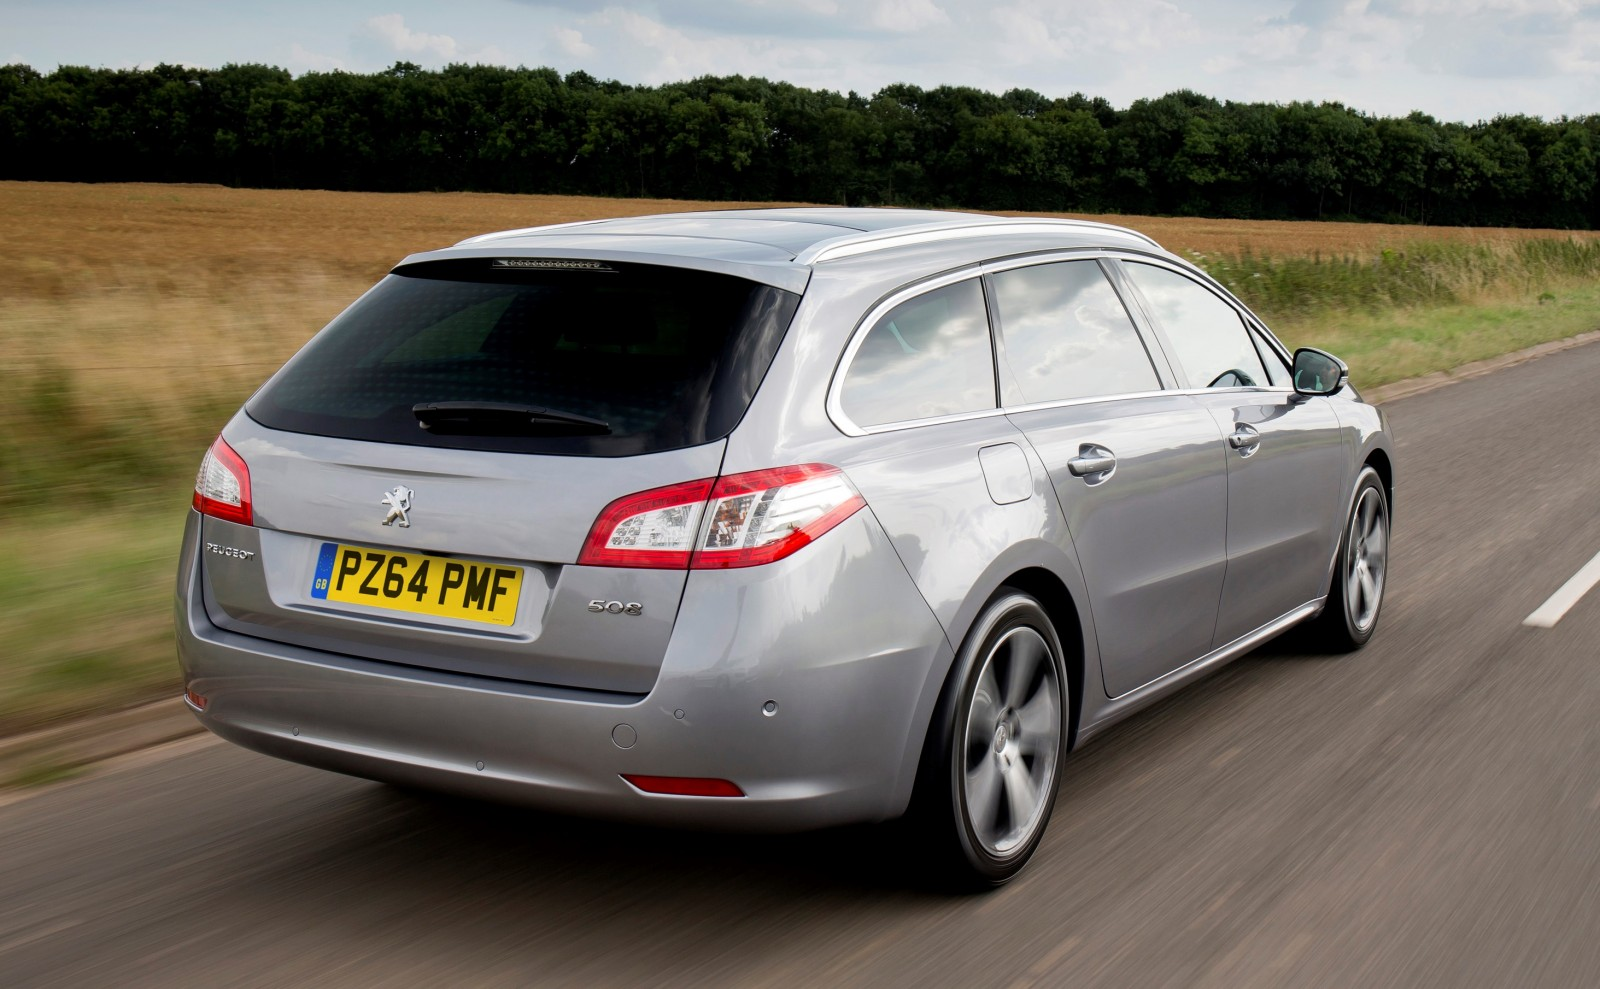 Update2 New Photos - 2015 Peugeot 508 Facelifted With New LED DRLs, Box-Design Beams and Tweaked Cabin Tech 5